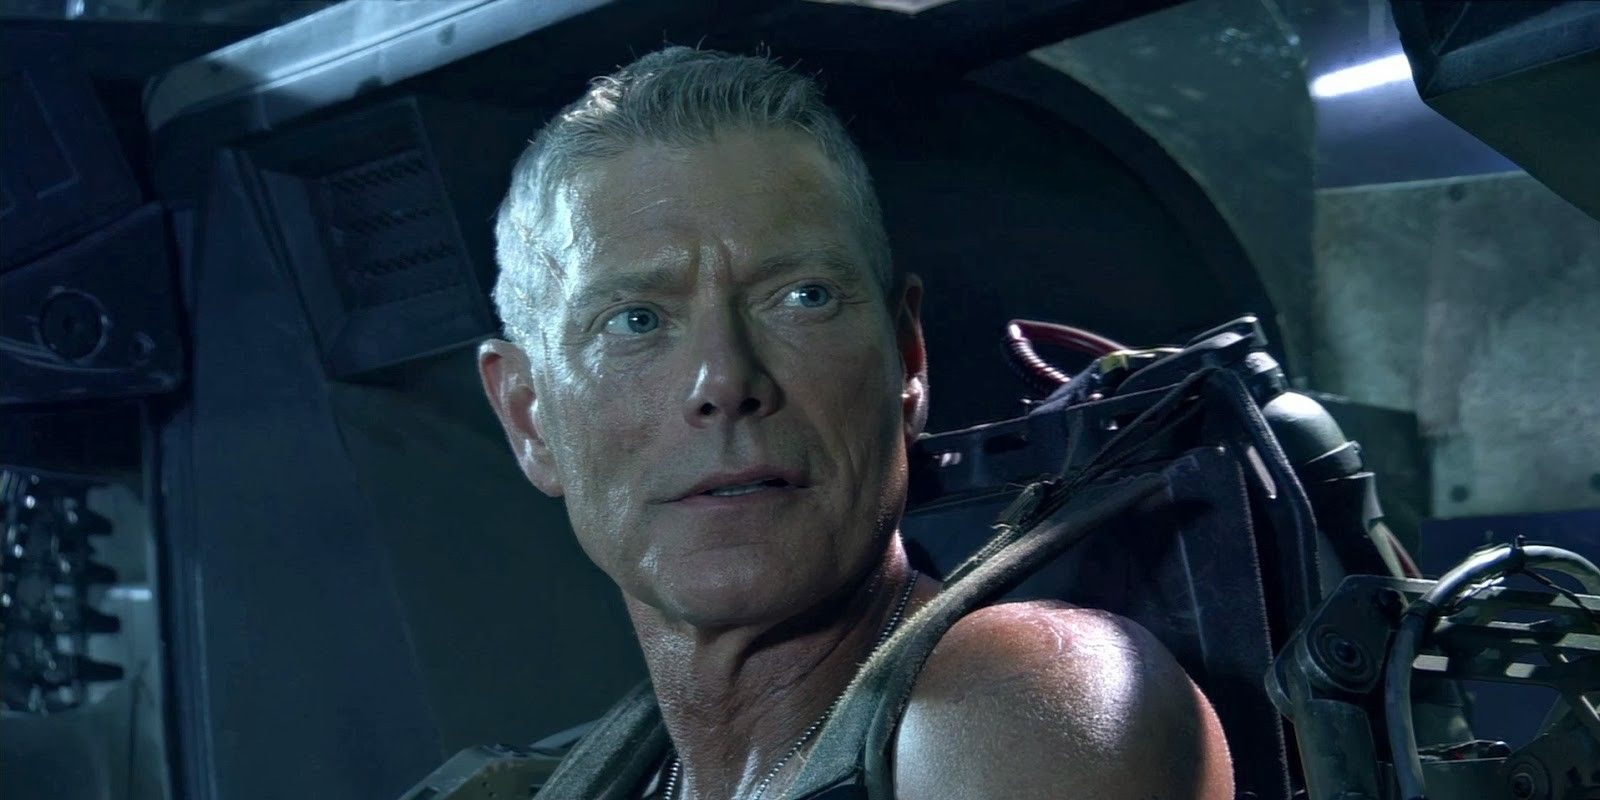 stephen lang avatar 2 is avatar on steroids underwater